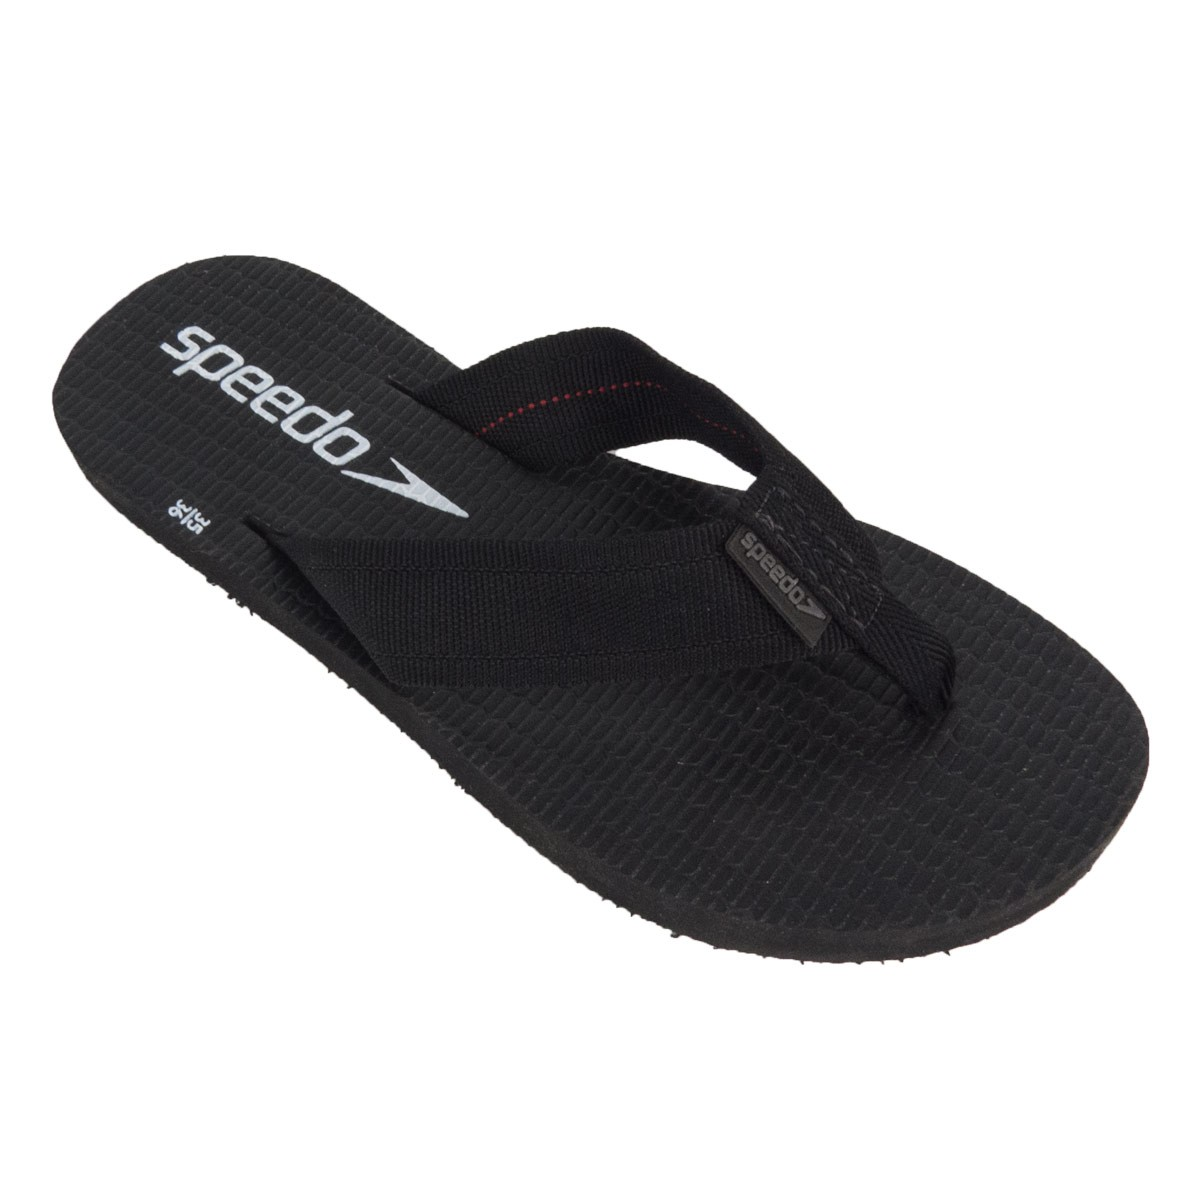 Chinelo Speedo Wide Stripes Preto L